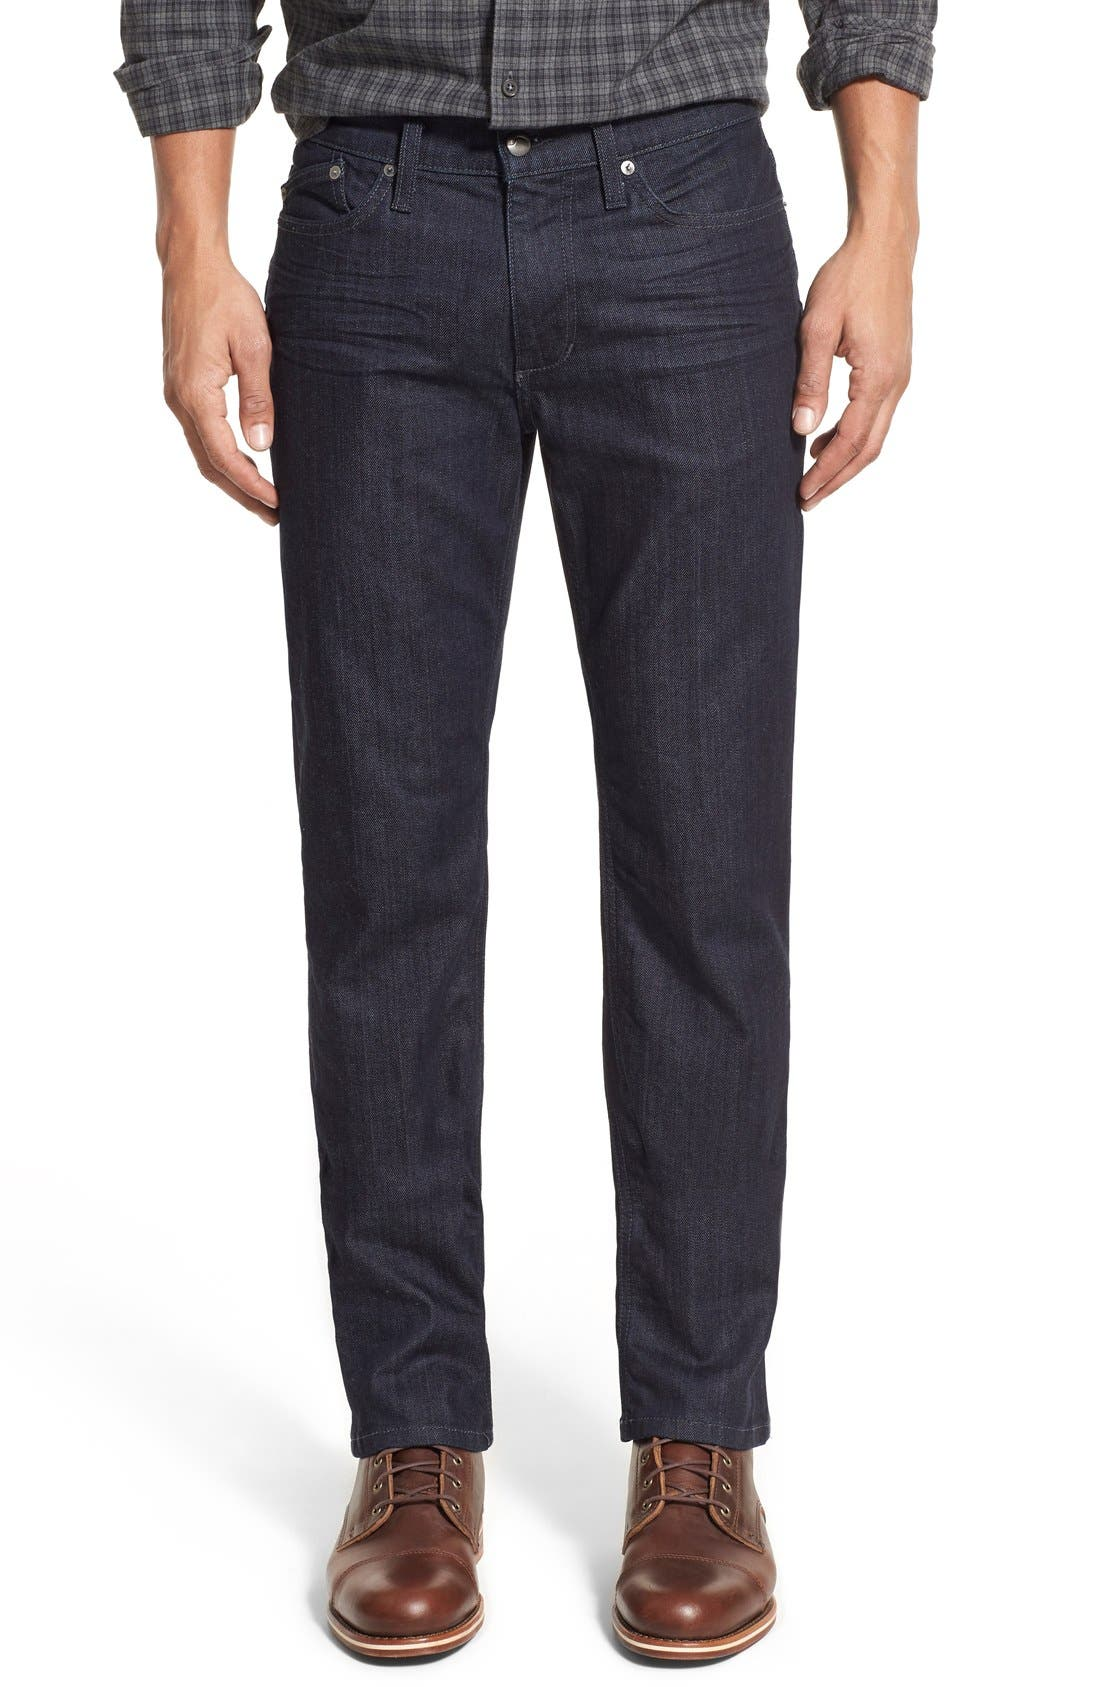 Alternate Image 1 Selected - Joe's Brixton Slim Straight Fit Jeans (King) (Regular & Tall)